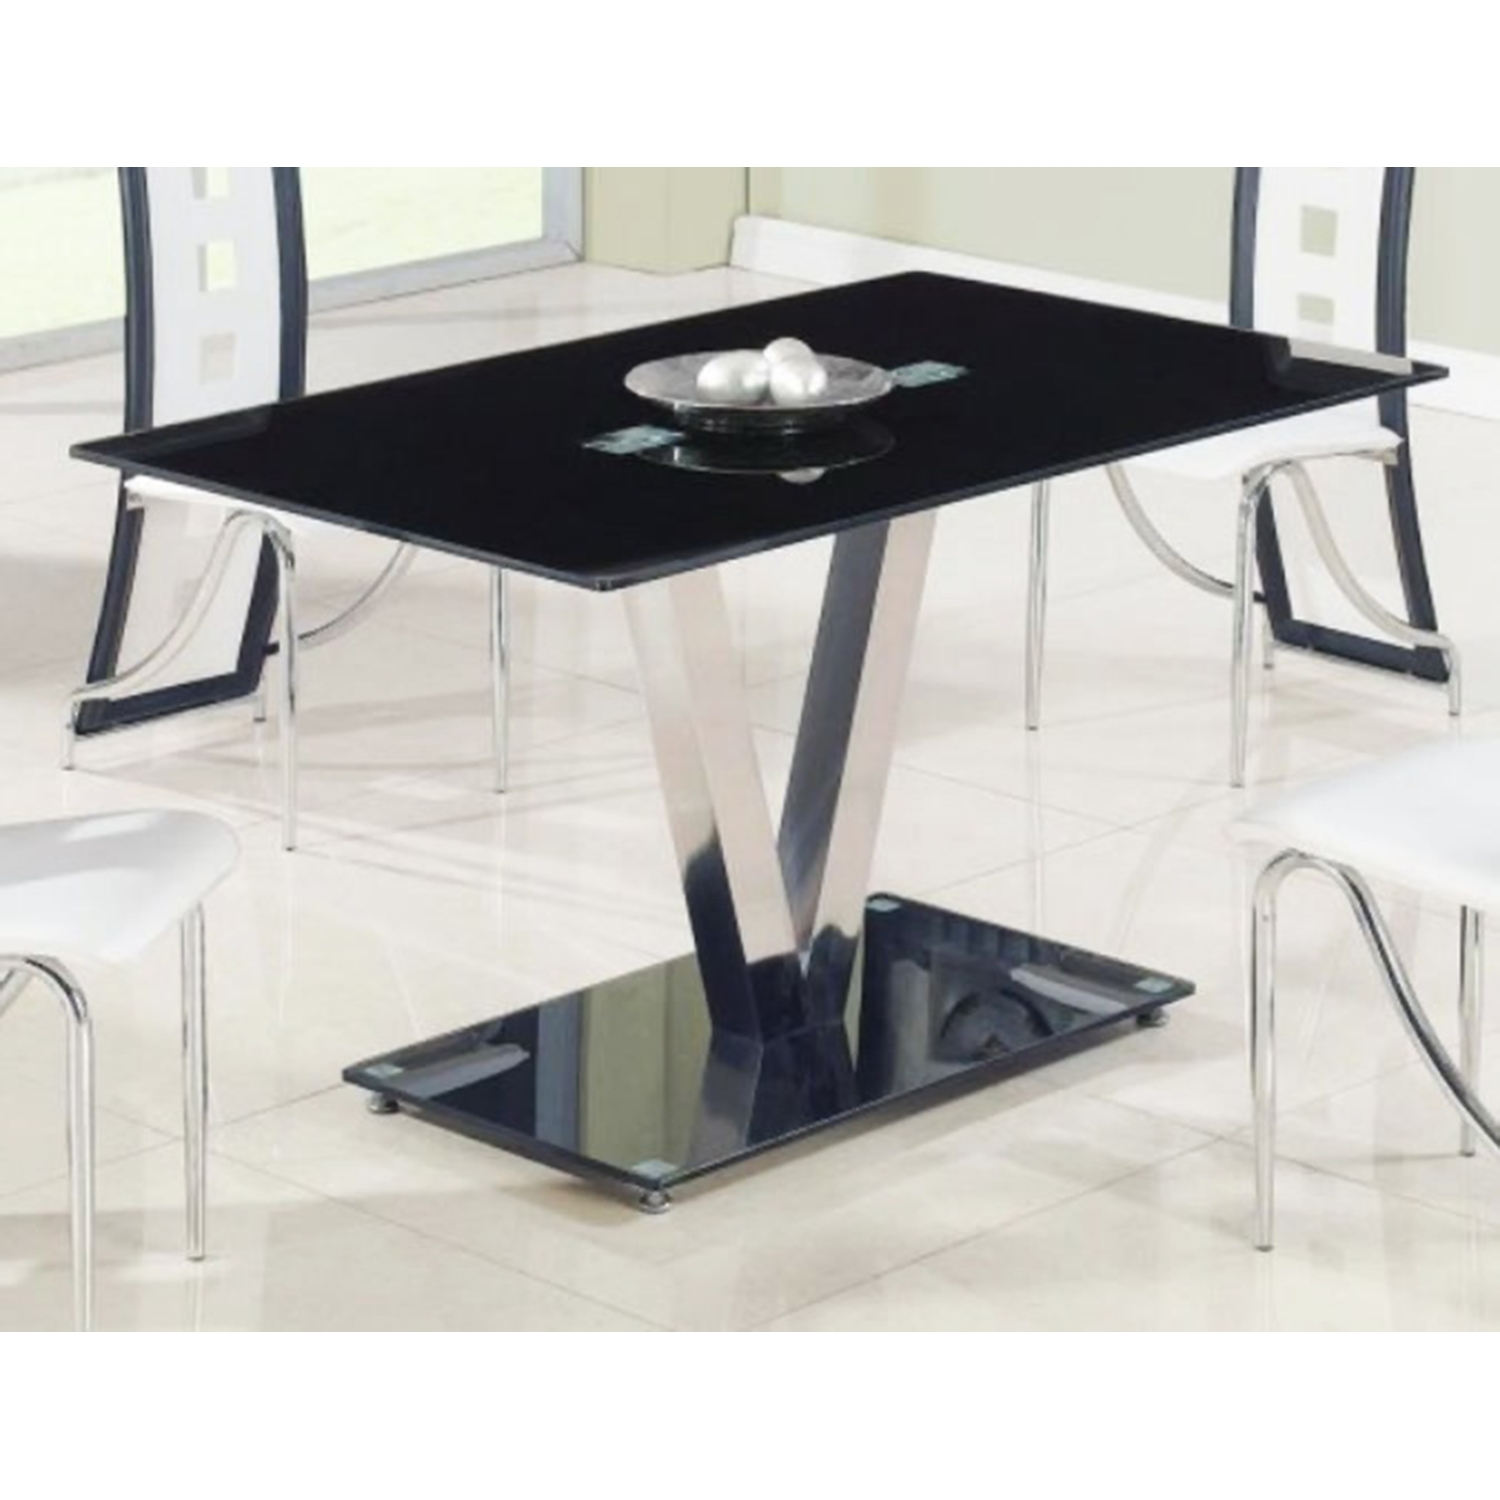 Kiara Dining Table   Black Glass, Stainless Steel Legs   GLO D551DT ...